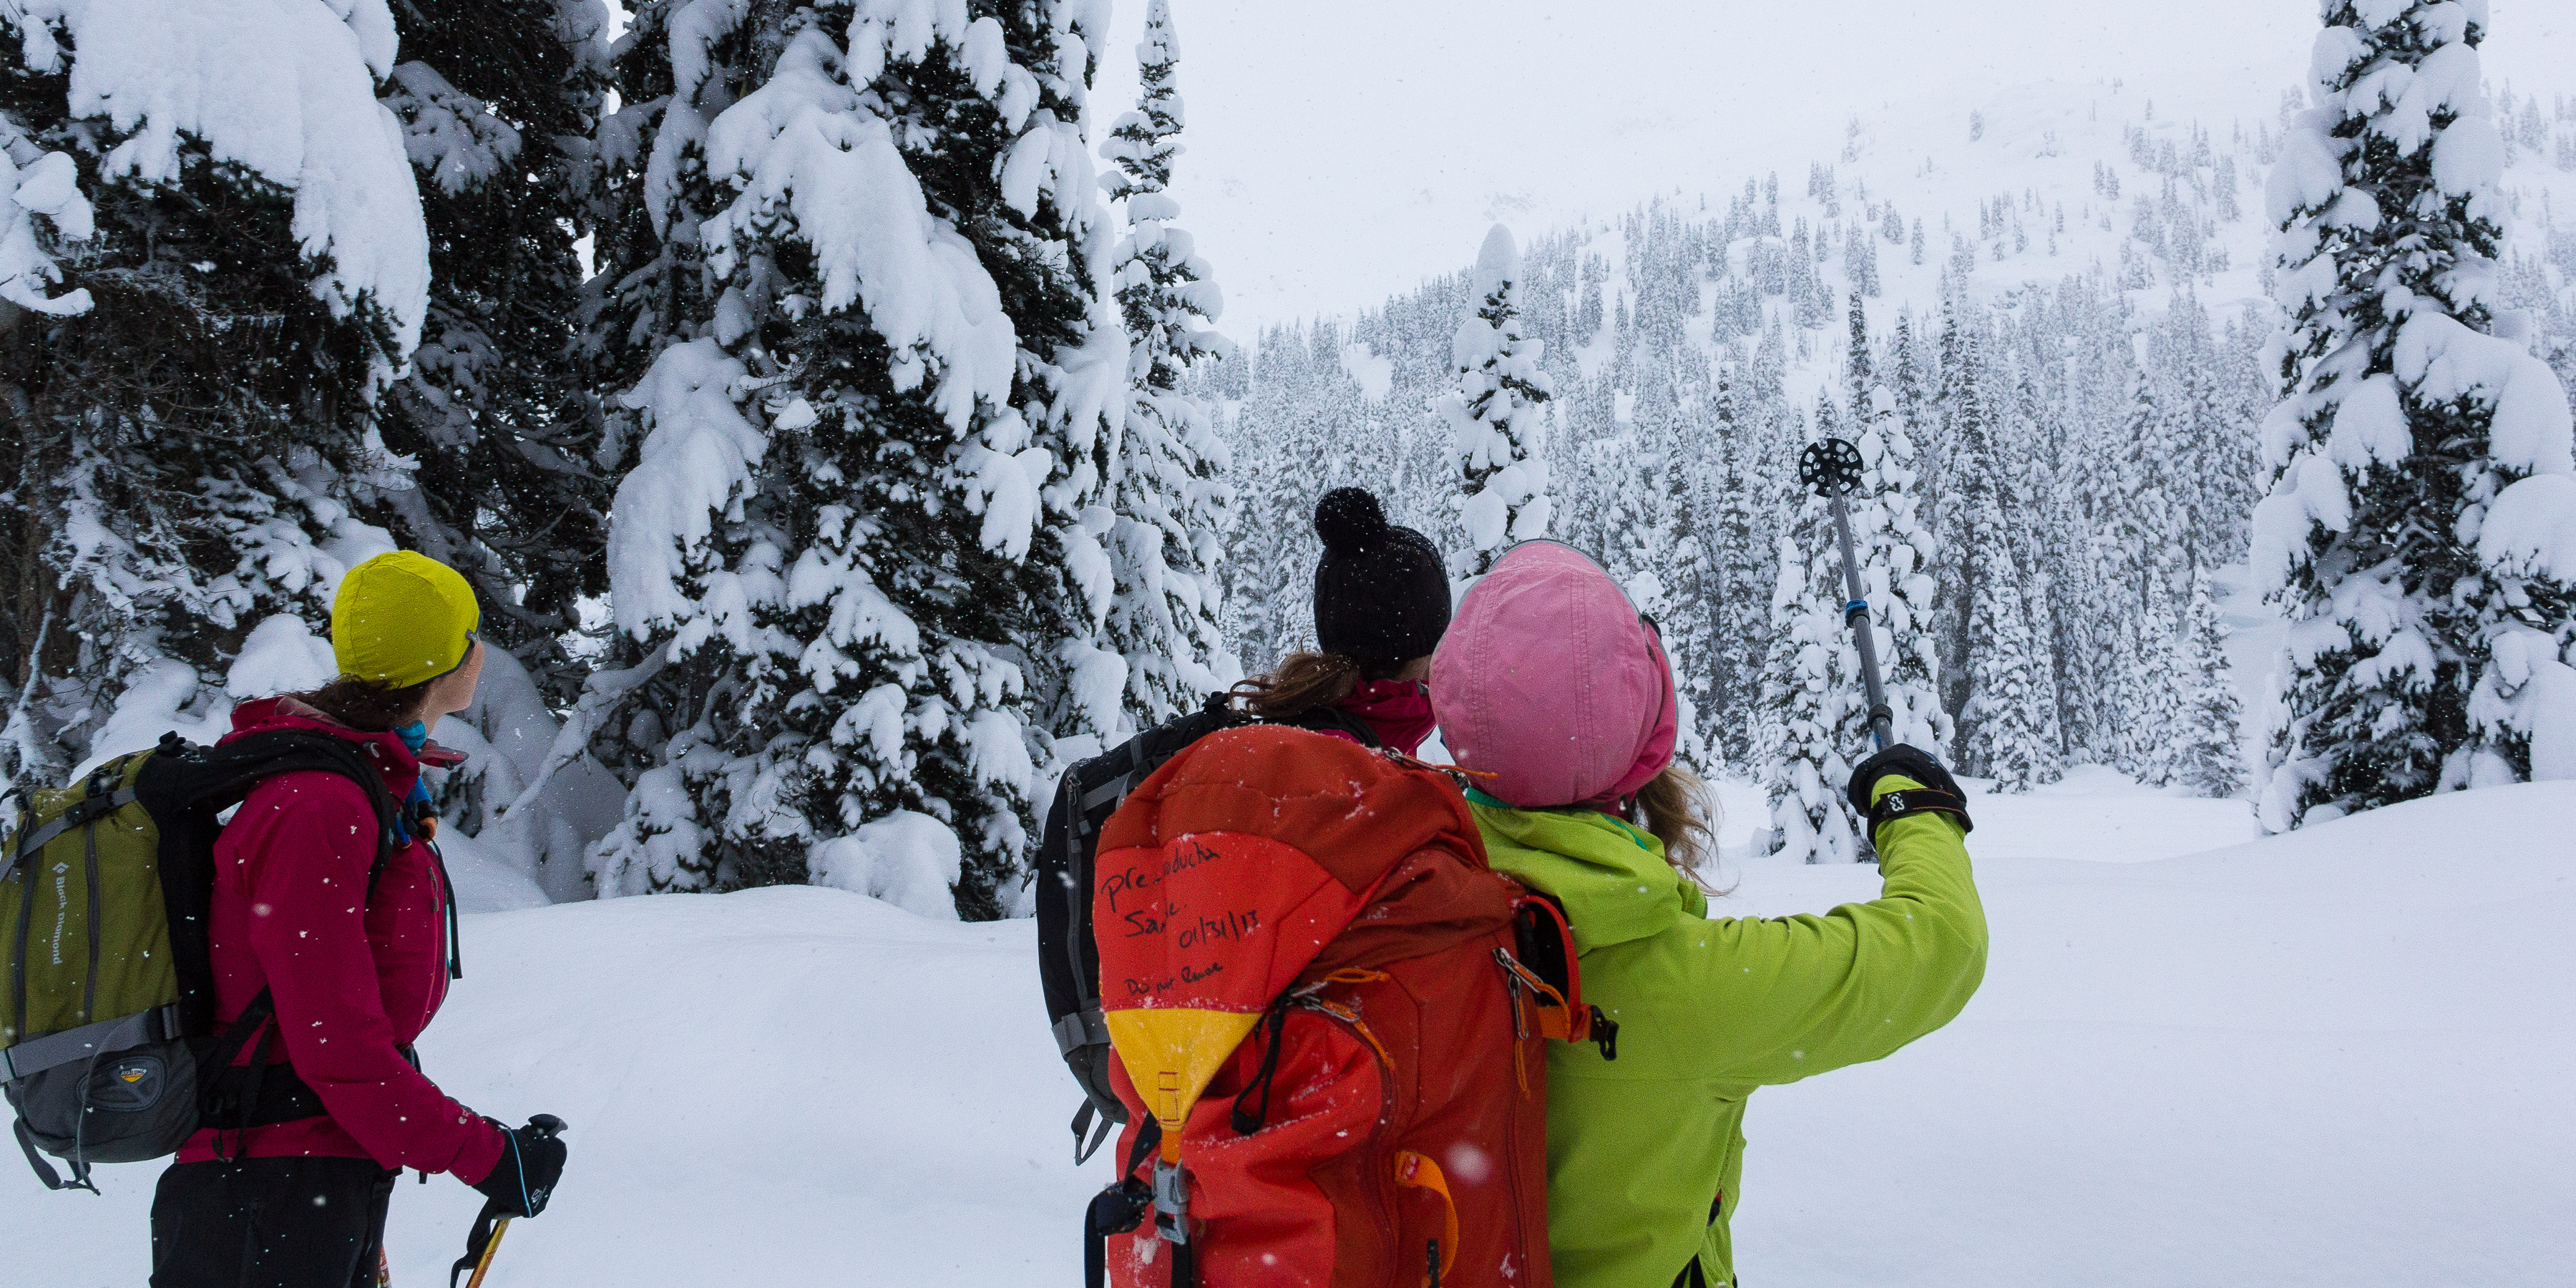 Upcoming Navigation Skills for Backcountry Touring Clinics